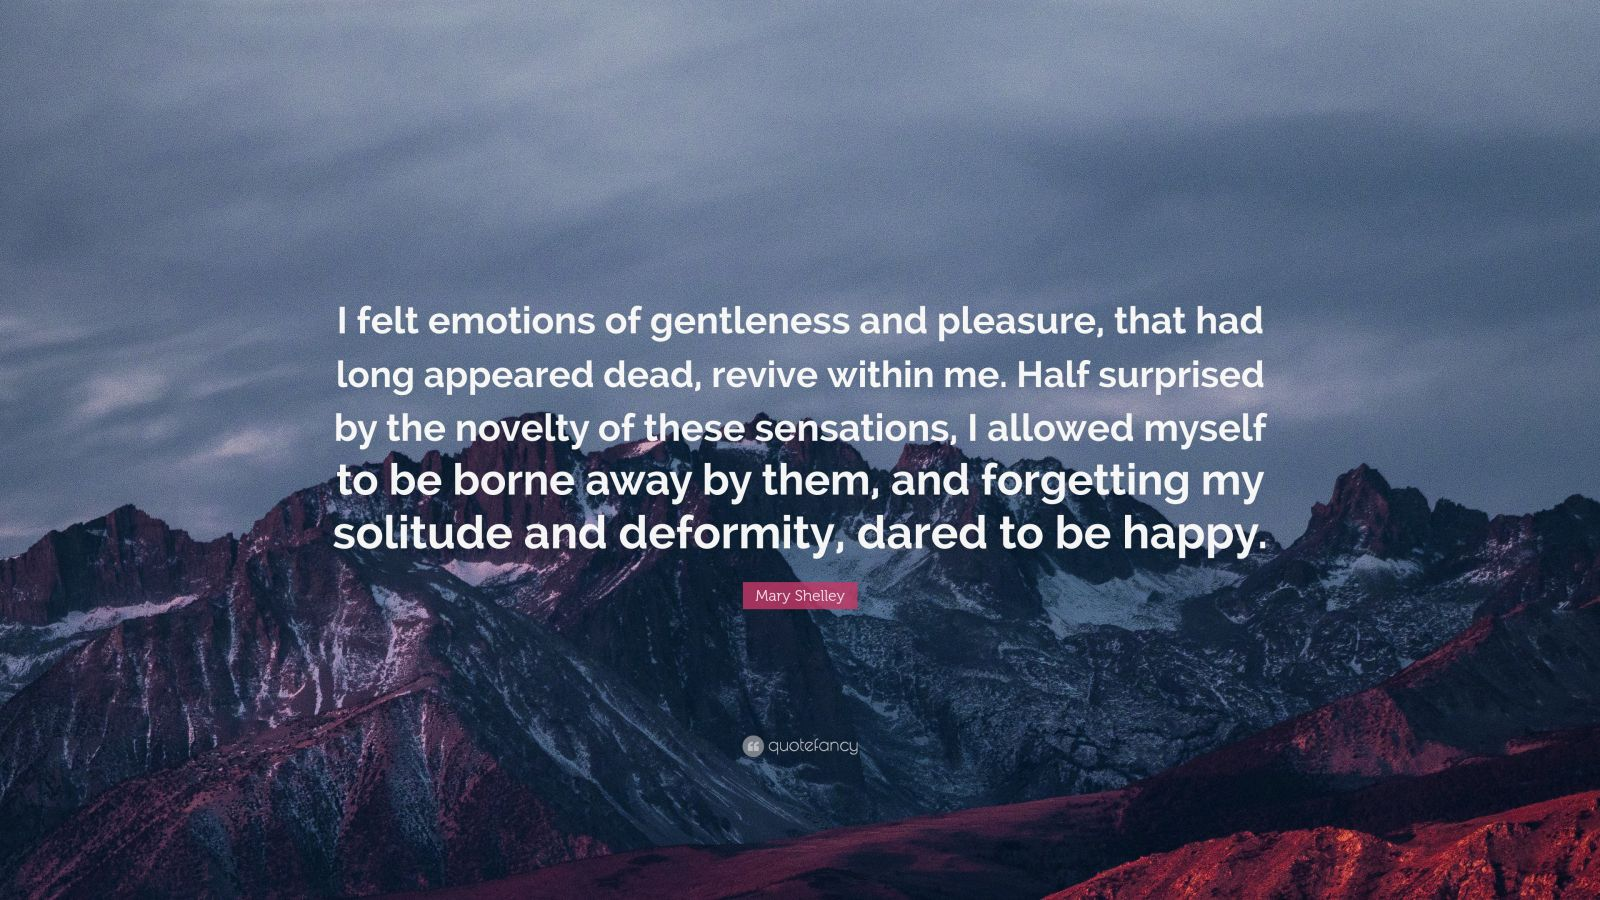 "Mary Shelley Quote: ""I felt emotions of gentleness and pleasure, that had long appeared dead, revive within me. Half surprised by the novelty of these sensations, I allowed myself to be borne away by them, and forgetting my solitude and deformity, dared to be happy."""